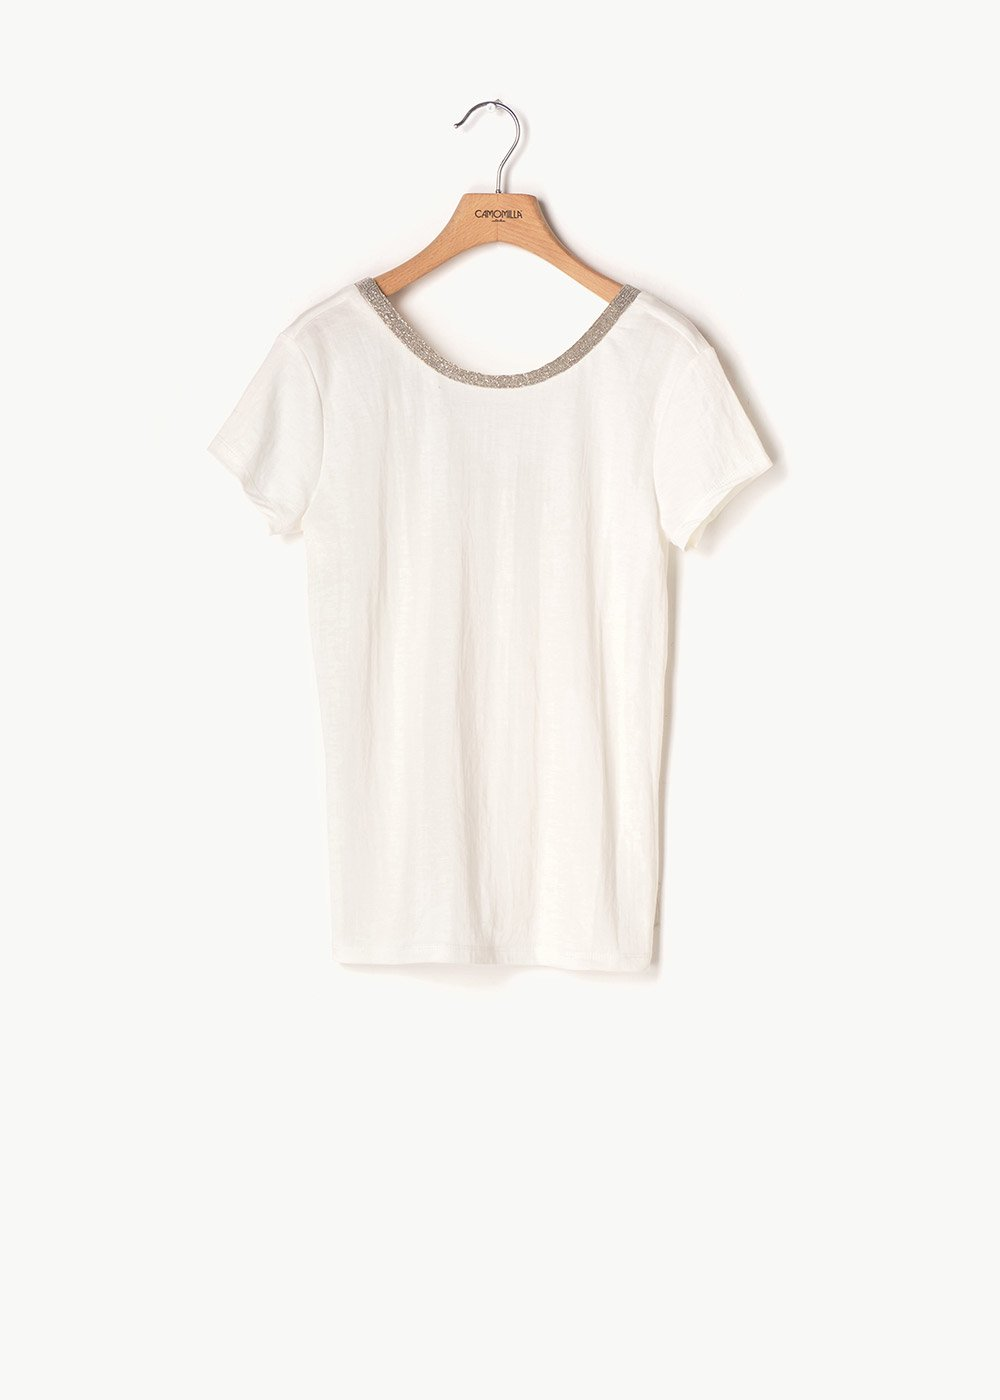 Sael T-shirt with round neck - White - Woman